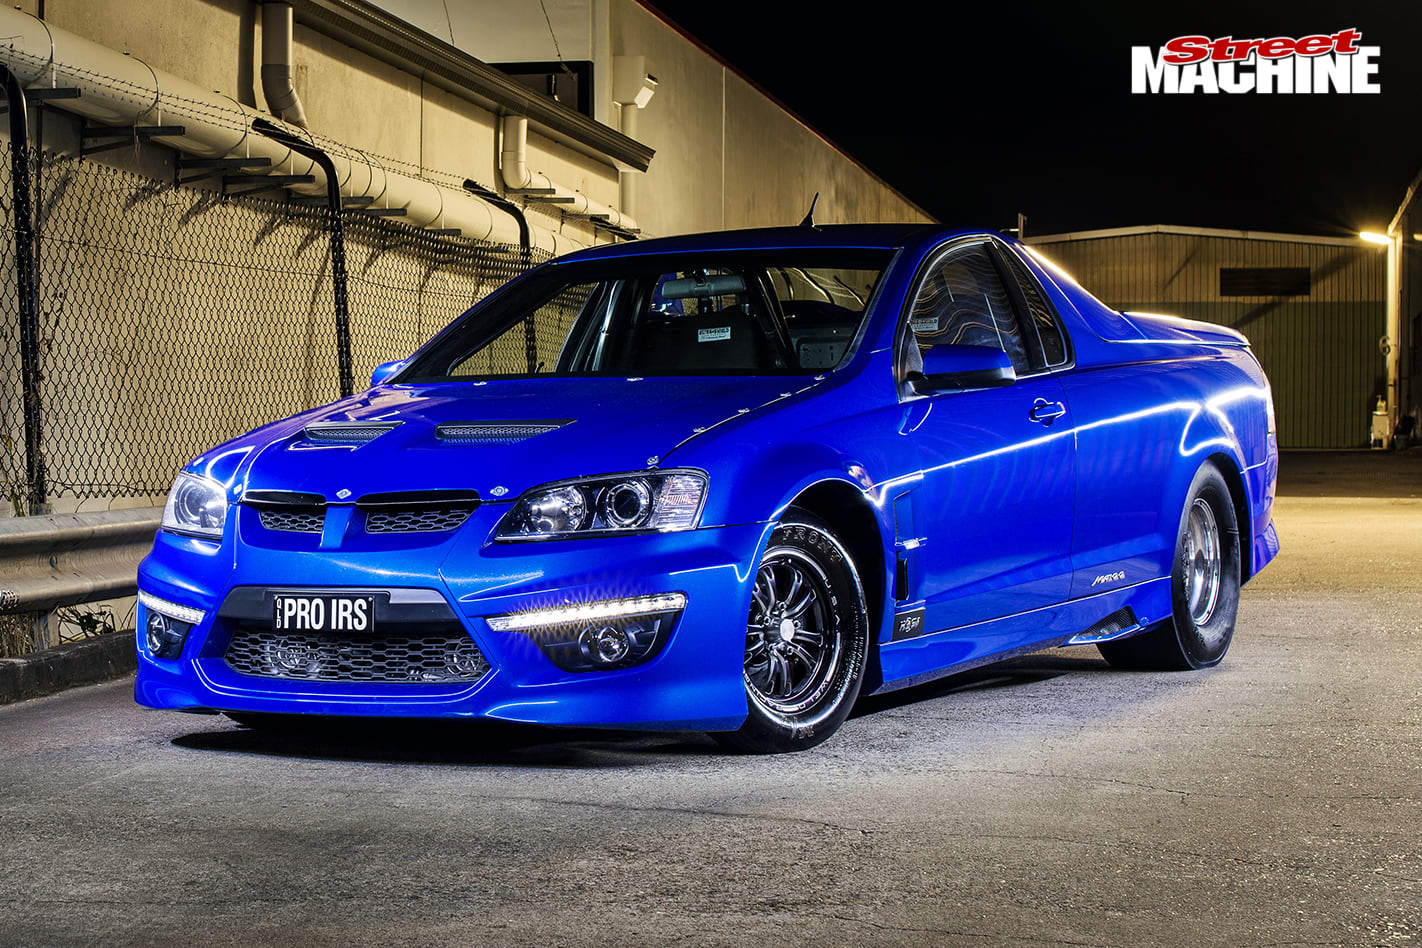 Hsv -ute -front -angle -nw